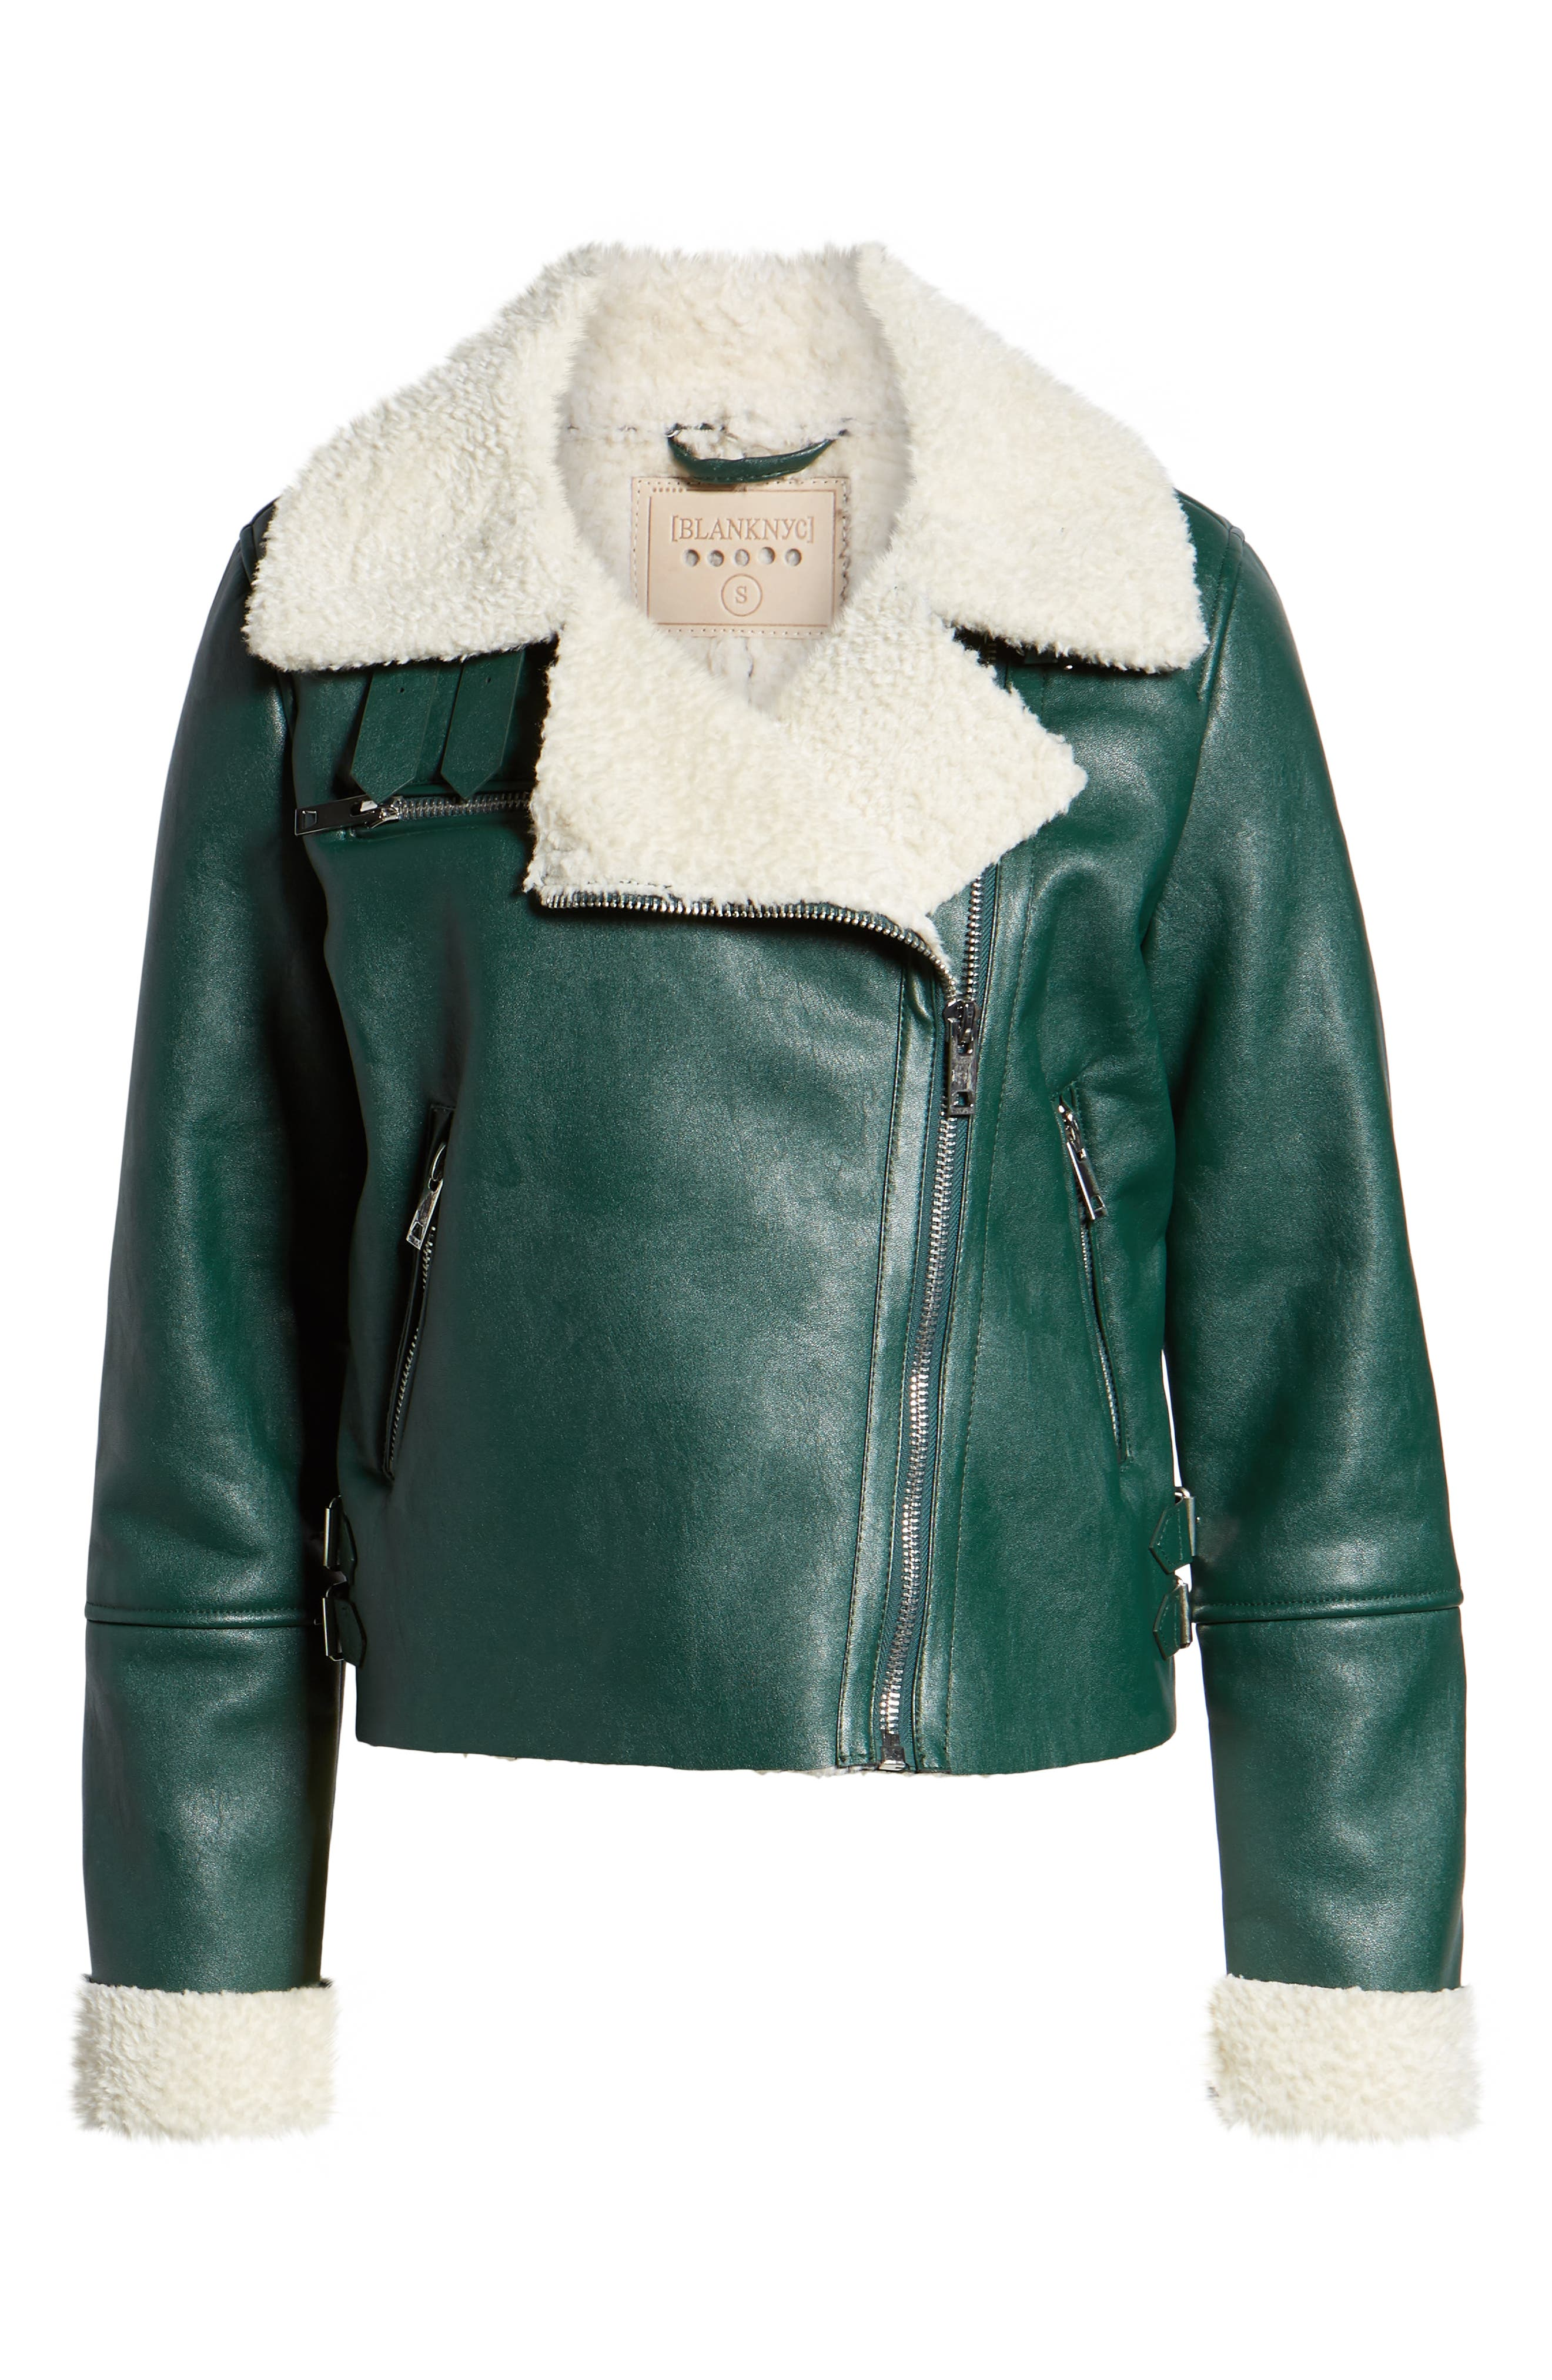 Moto Jacket with Faux Shearling Lining,                             Alternate thumbnail 6, color,                             OUT OF THE WOODS